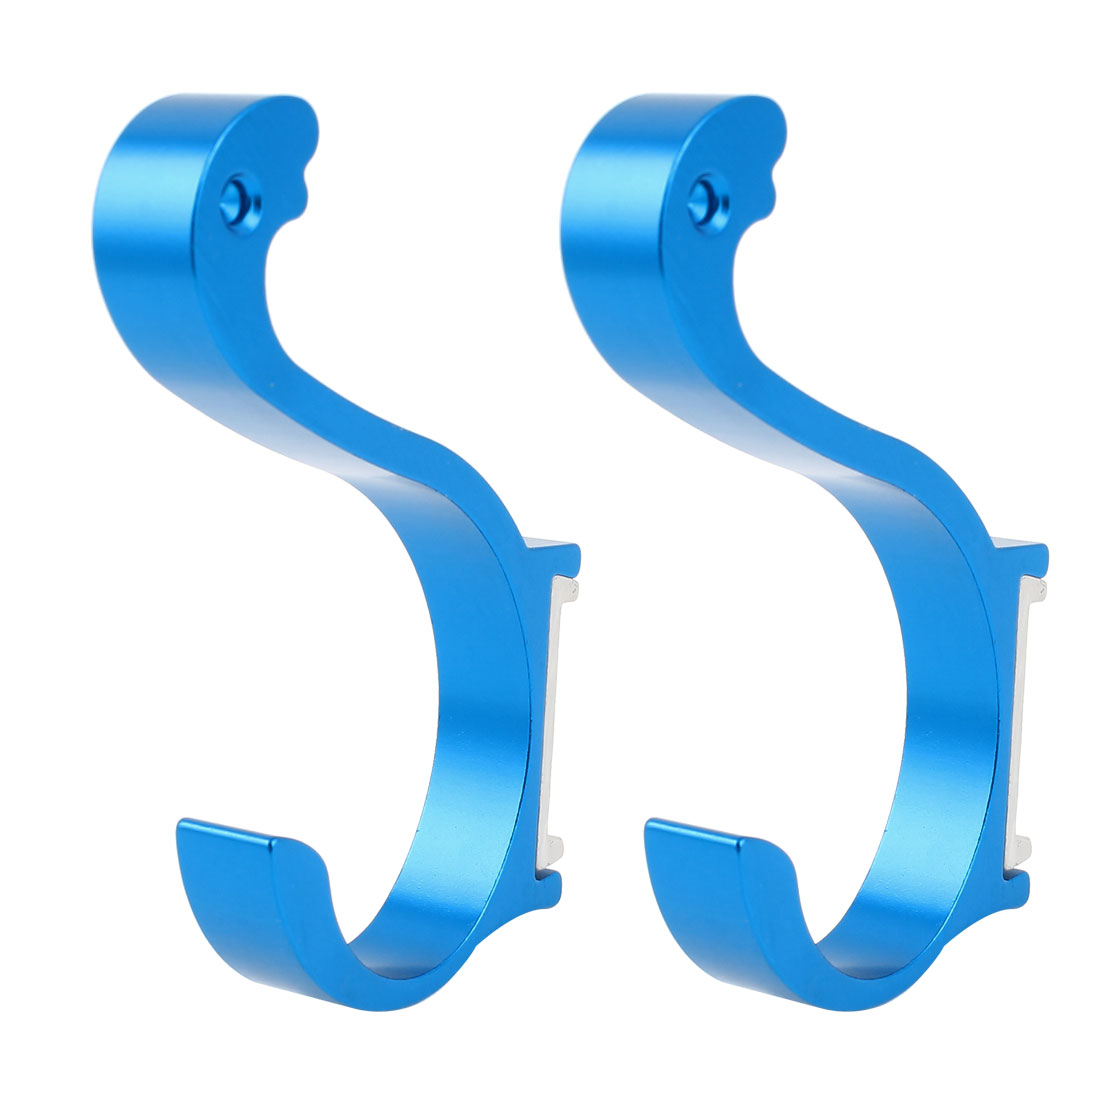 2 Pcs Aluminum Wall Mount Bathroom Towel Holder Robe Hooks Hangers Sky Blue 3.7""